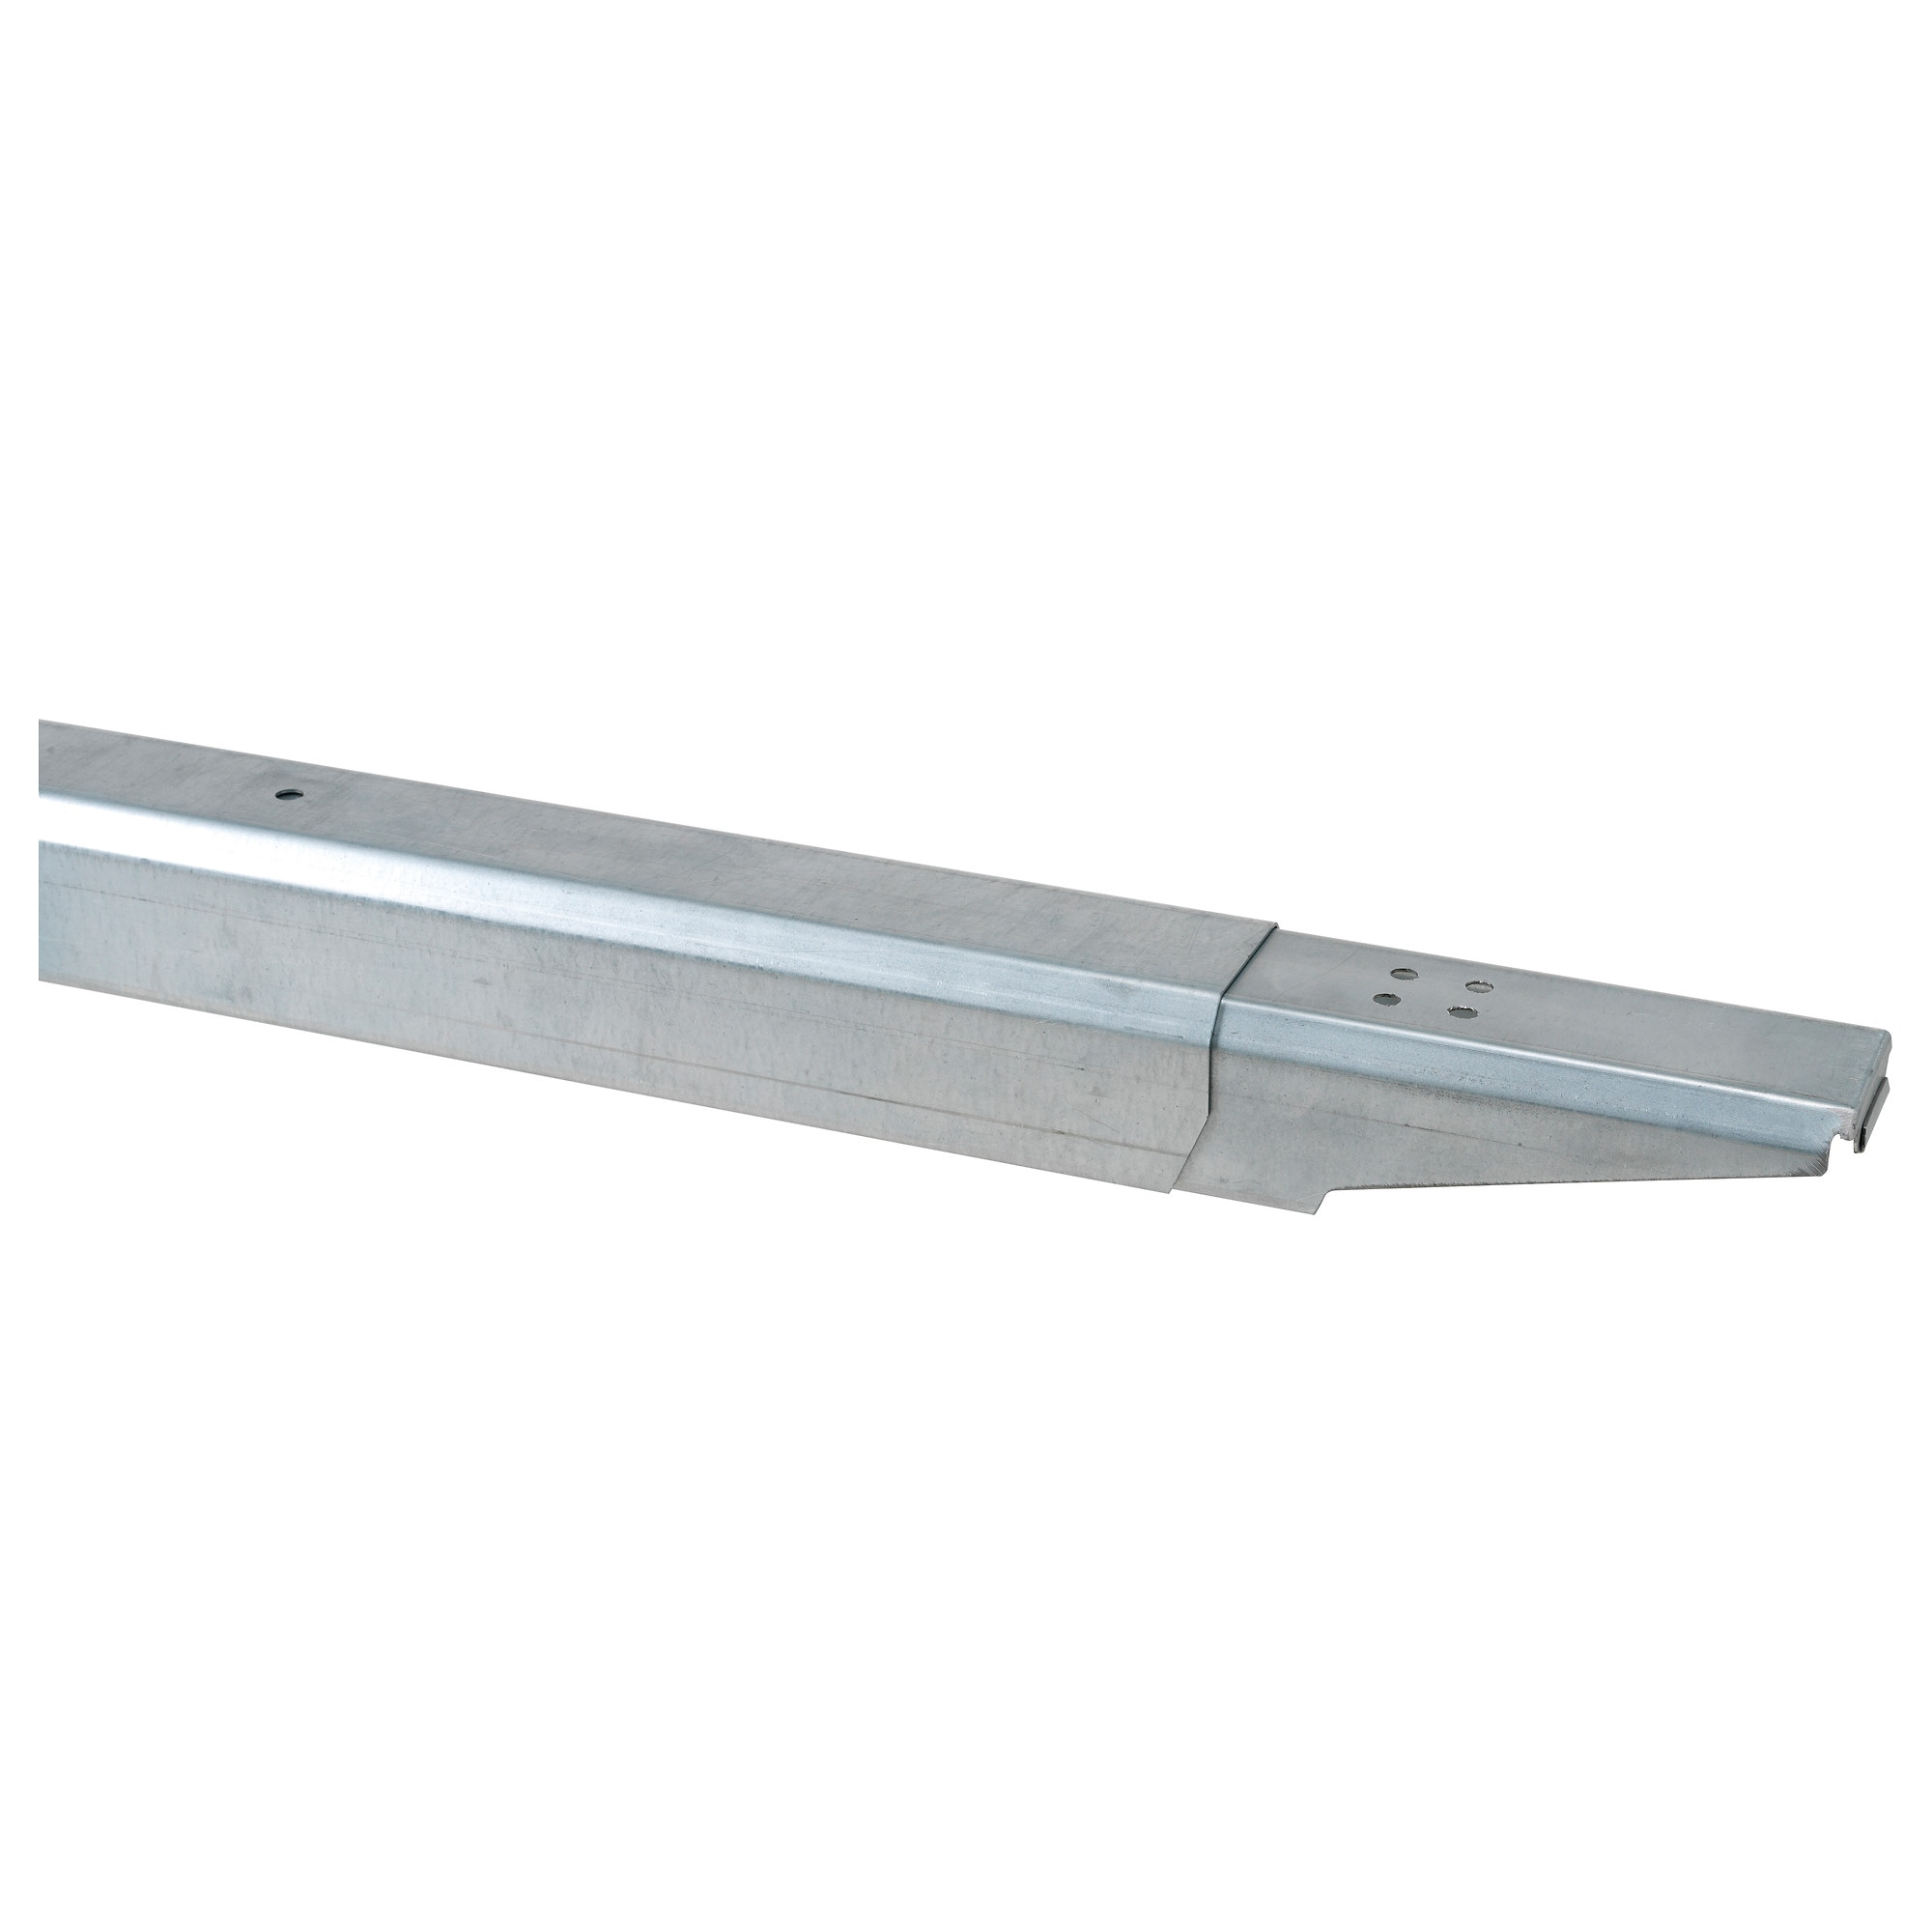 skorva center support beam - ikea